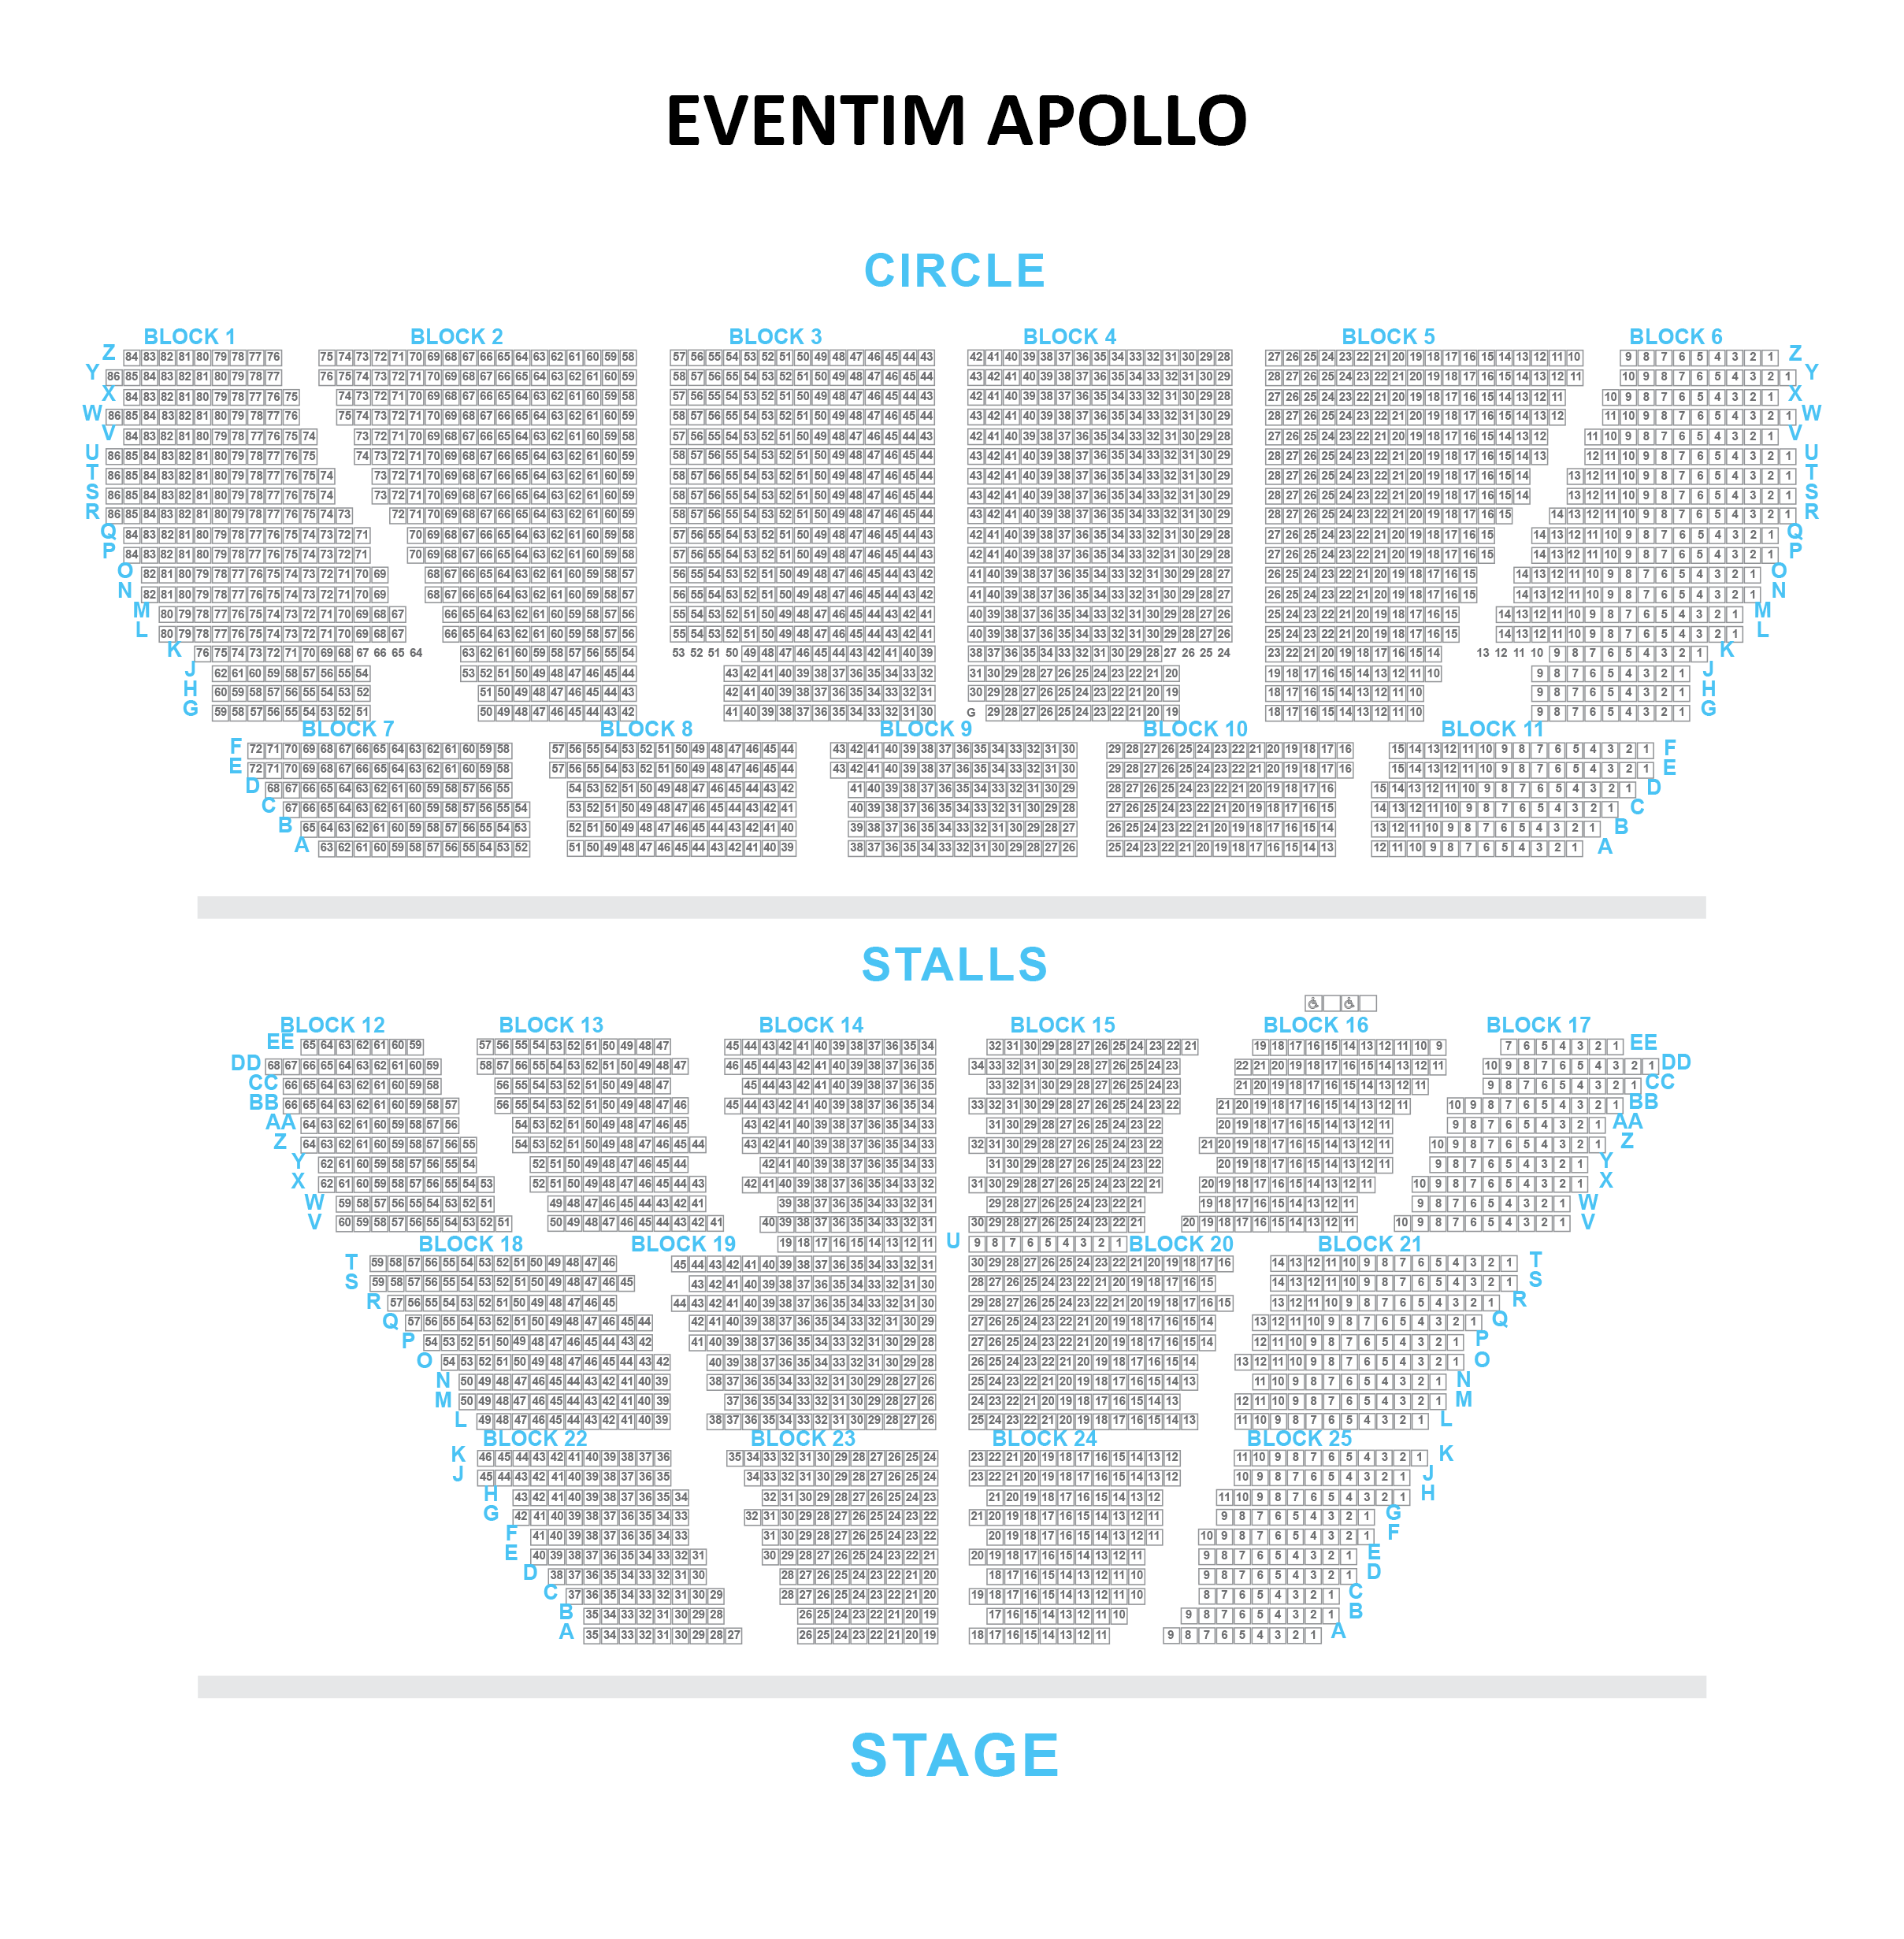 Eventim Apollo